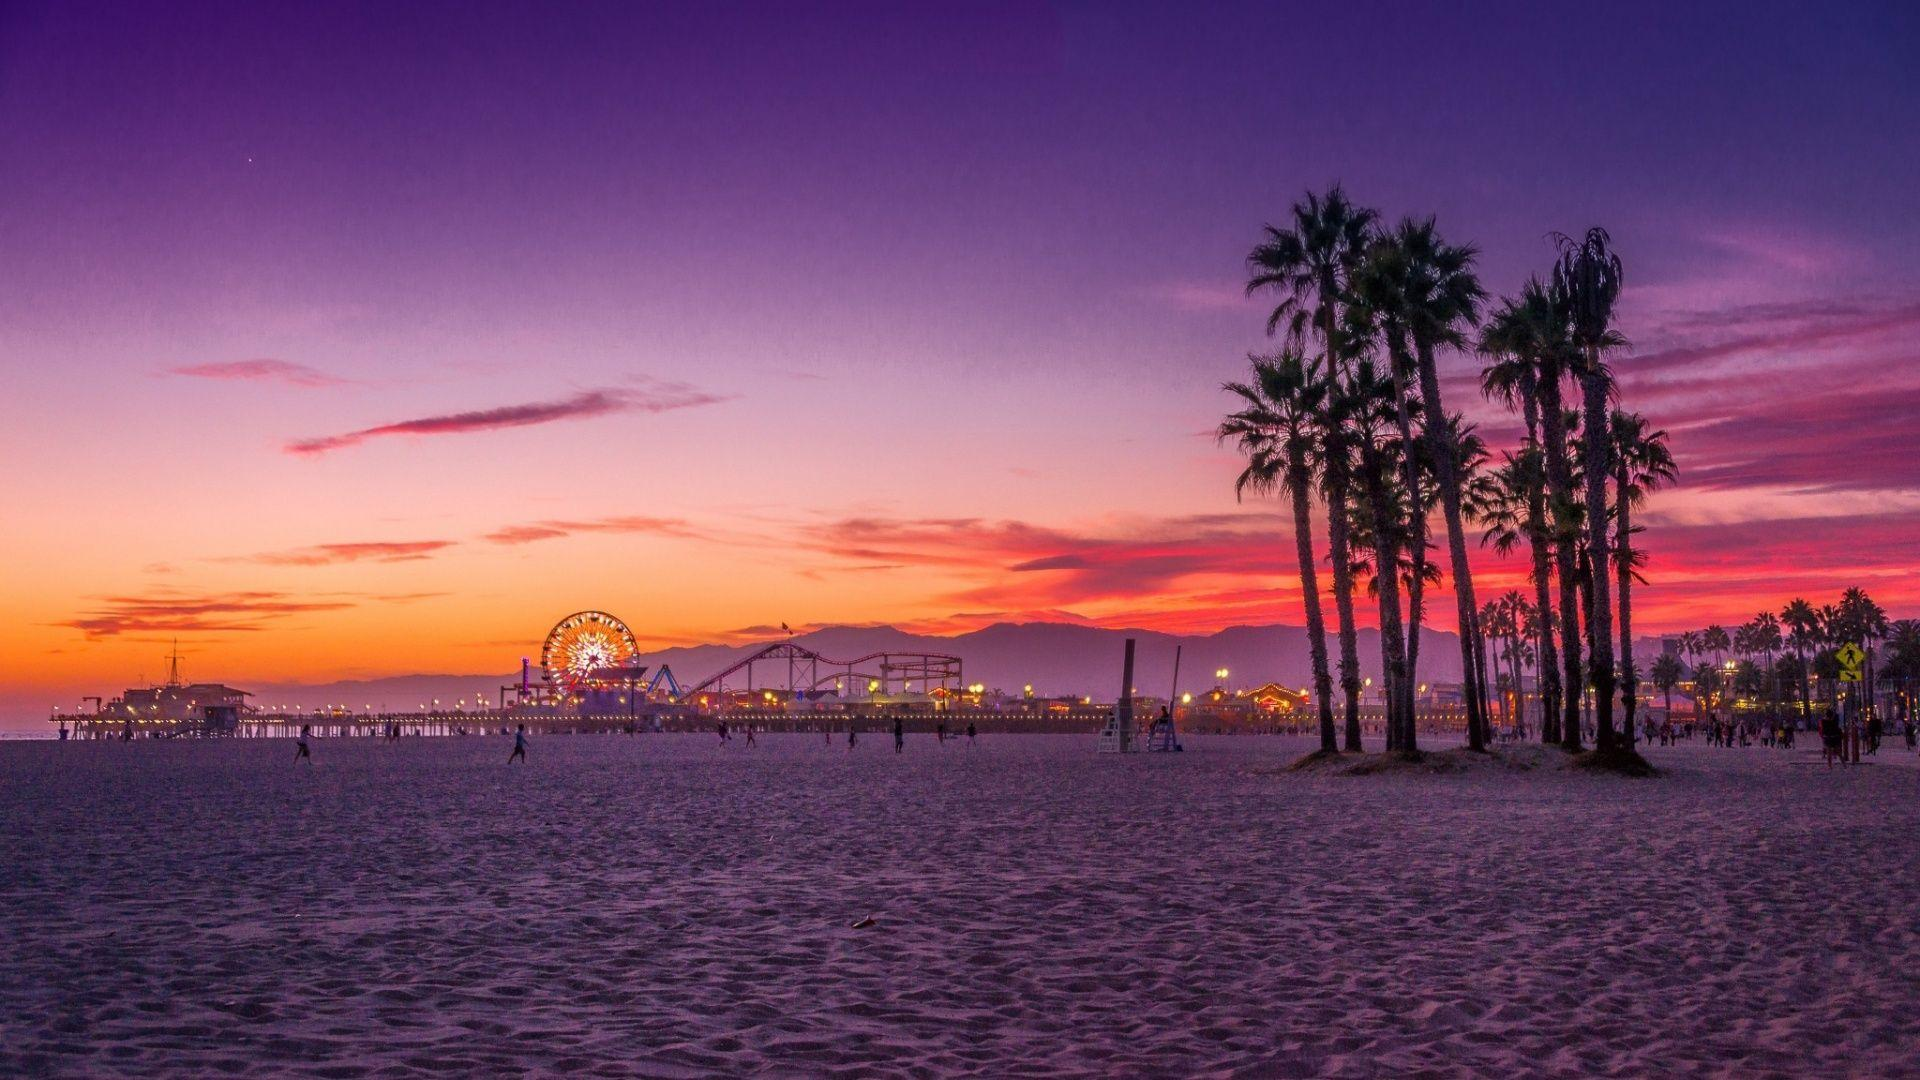 santa monica city, california[1920x1080] : wallpapers